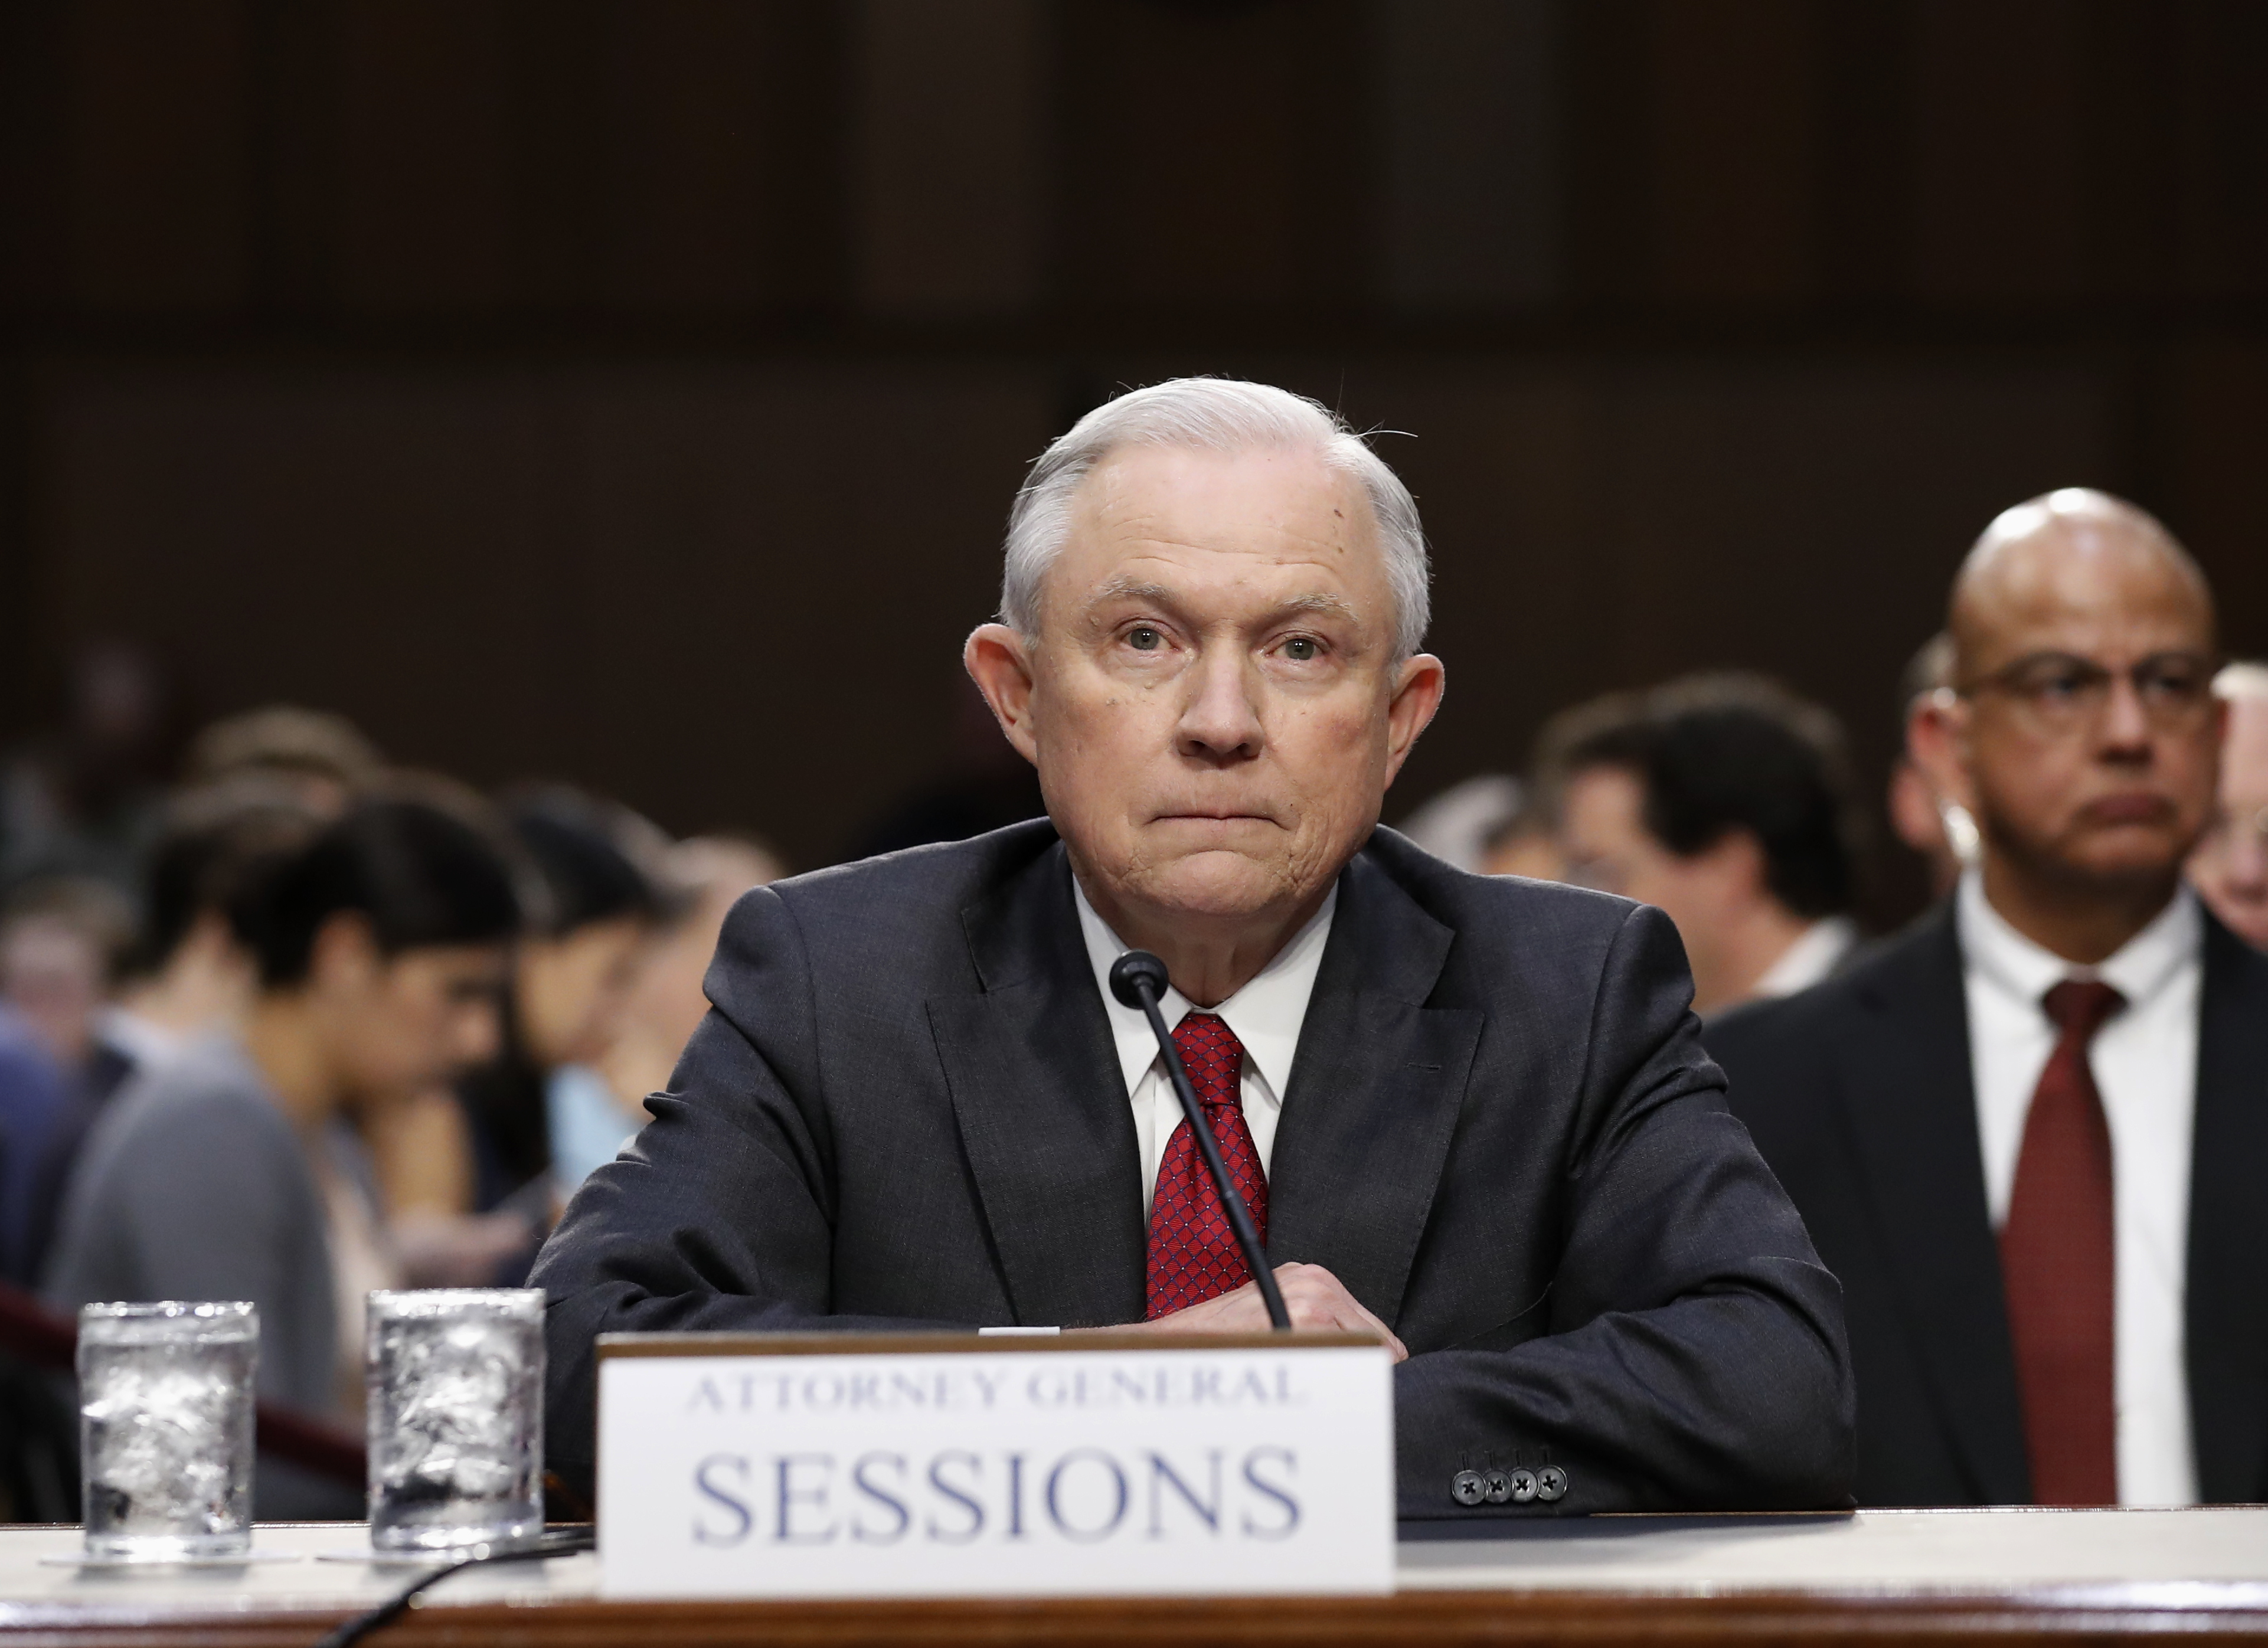 Attorney General Jeff Sessions is sworn-in on Capitol Hill in Washington, Tuesday, June 13, 2017, prior to testifying before the Senate Intelligence Committee hearingabout his role in the firing of James Comey, his Russian contacts during the campaign and his decision to recuse from an investigation into possible ties between Moscow and associates of President Donald Trump. (AP Photo/Alex Brandon)